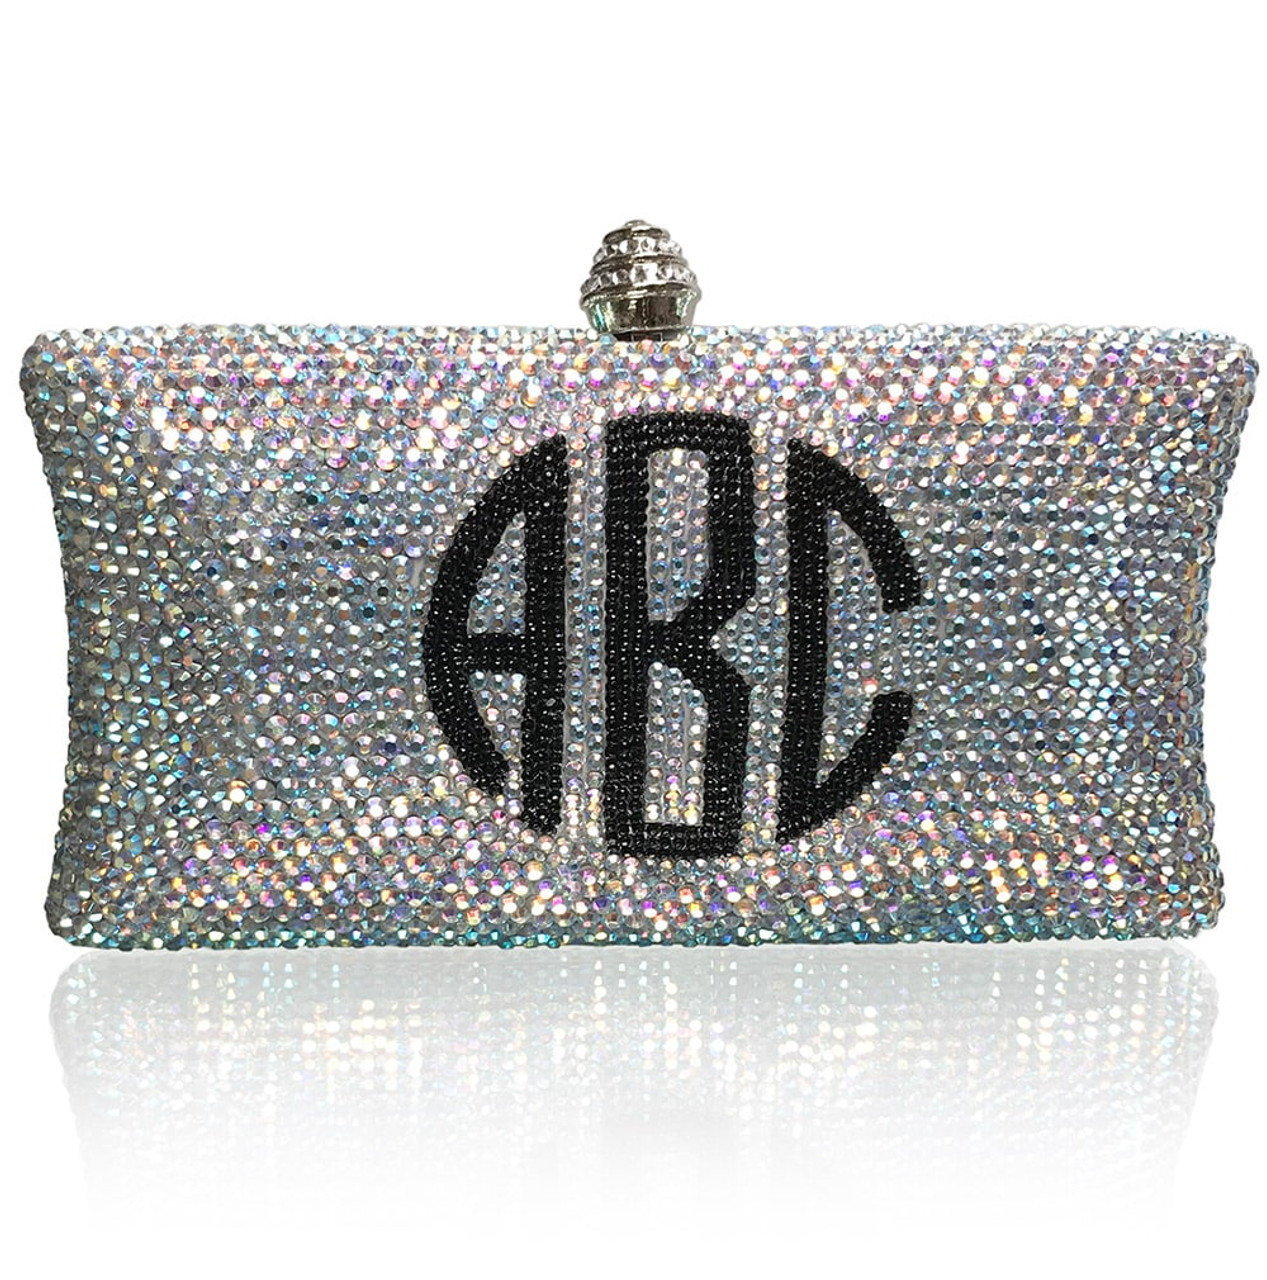 Monogram Clutch (iPhone Xs Max Friendly)